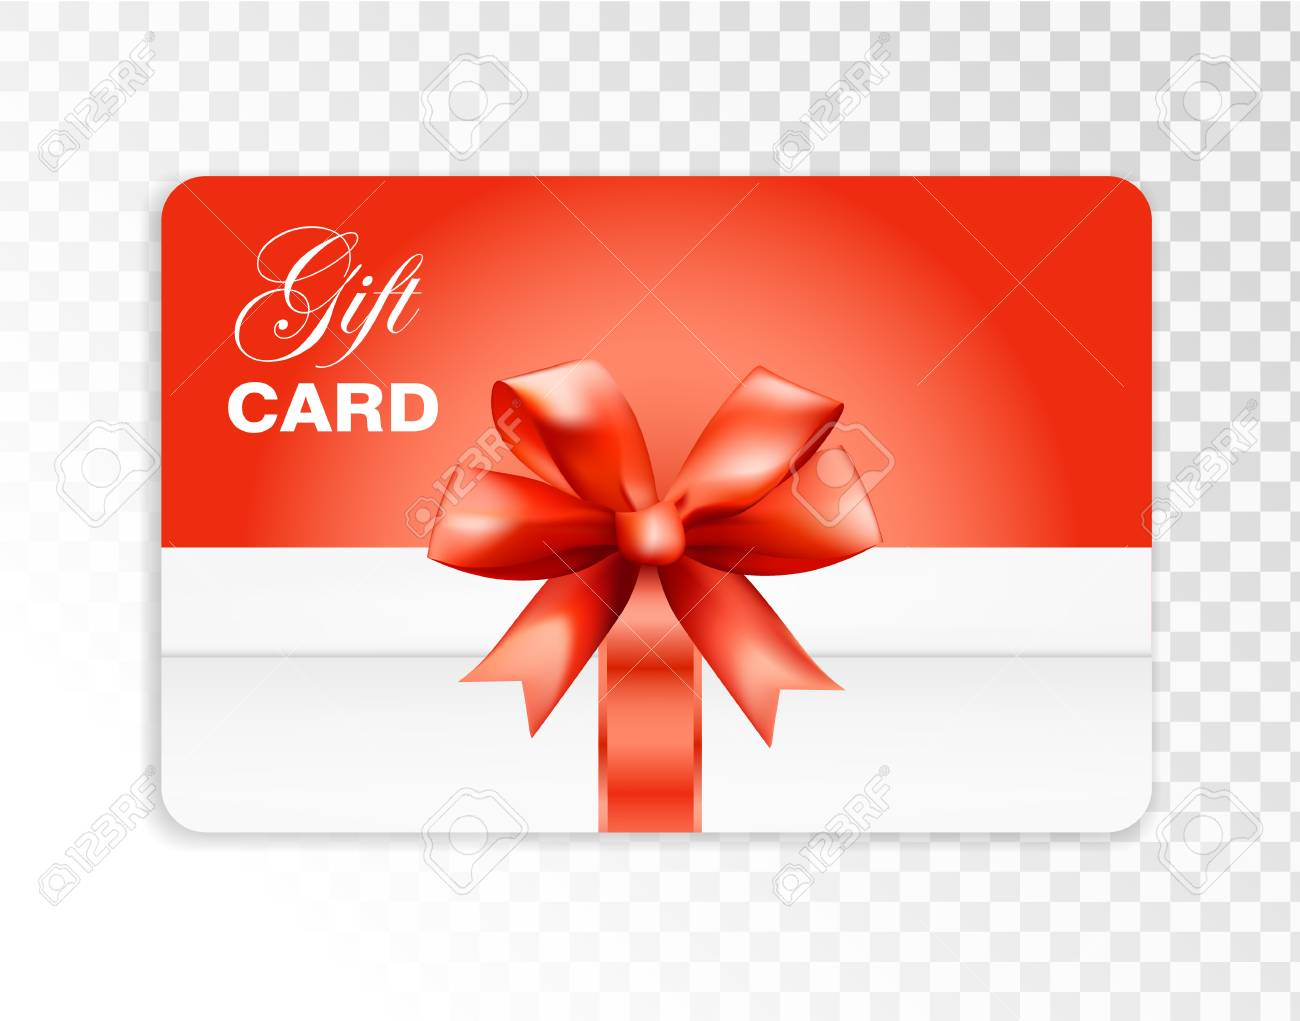 Gift Card With Box And Red Bow Isolated On Transparent Background